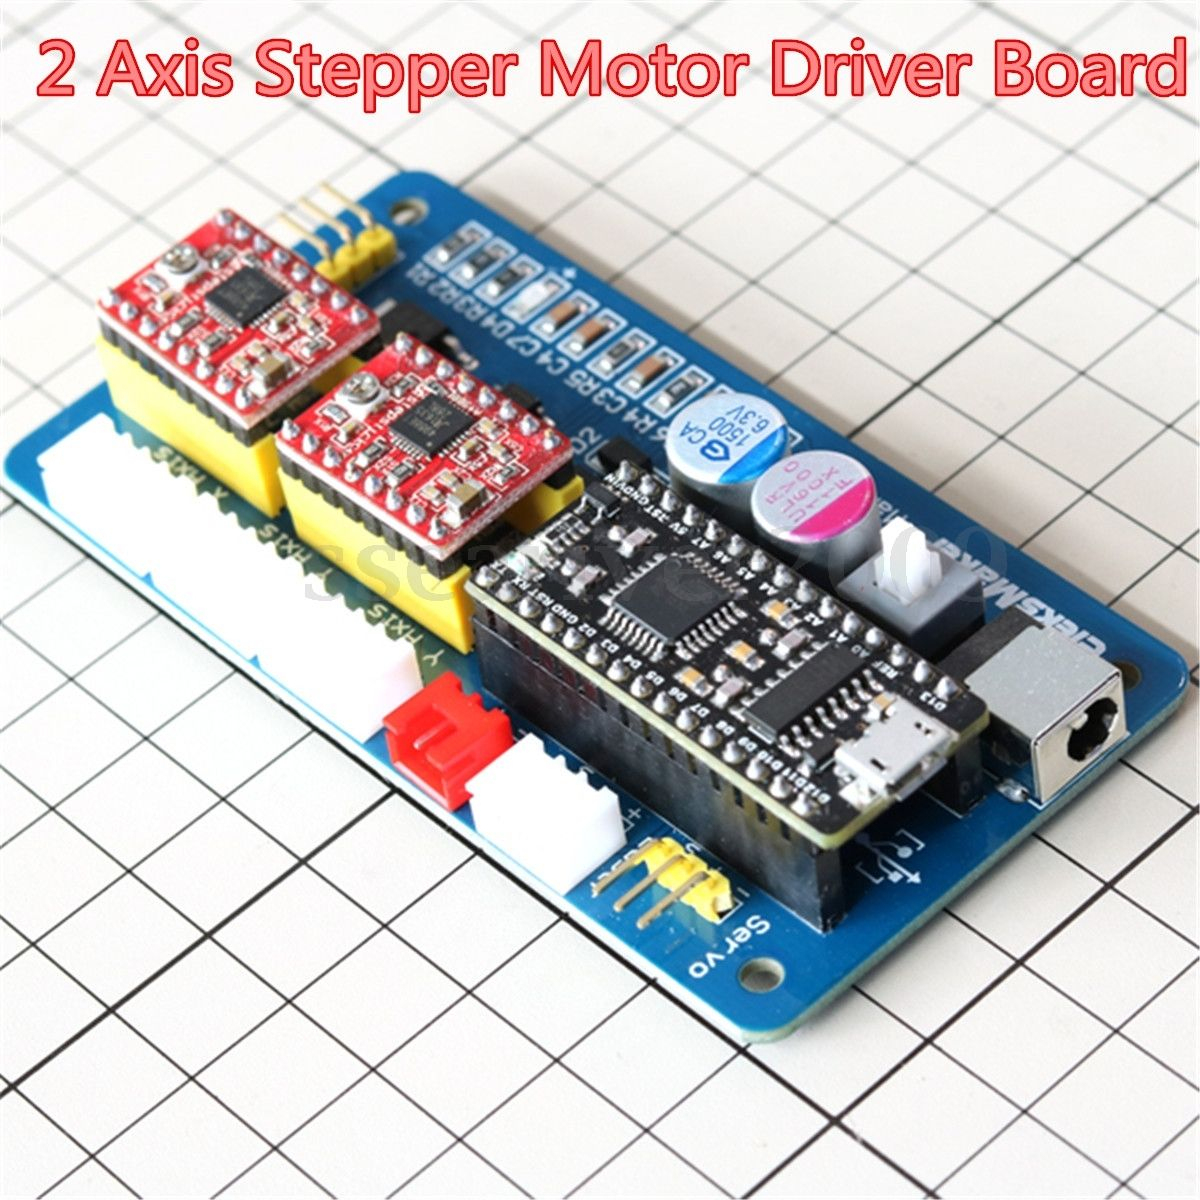 2 Axis Usb Cnc Stepper Motor Control Board Driver 12V Power For - Usbcnc 3 Axis Stepper Motor Usb Driver Board Controller Laser Board For Cnc Wiring Diagram